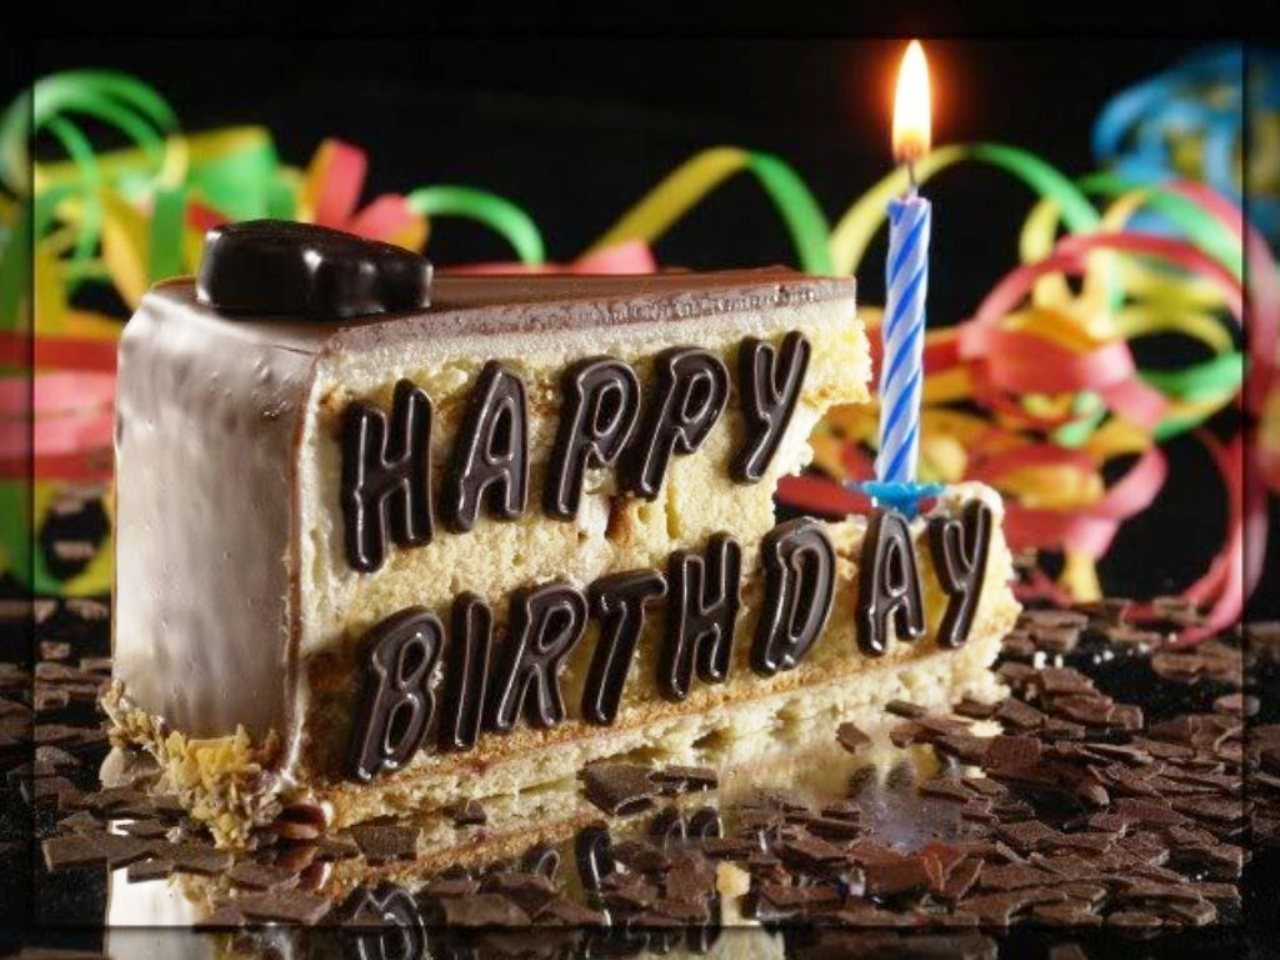 free happy birthday wallpaper for android ; happy-birthday-cake-hd-1